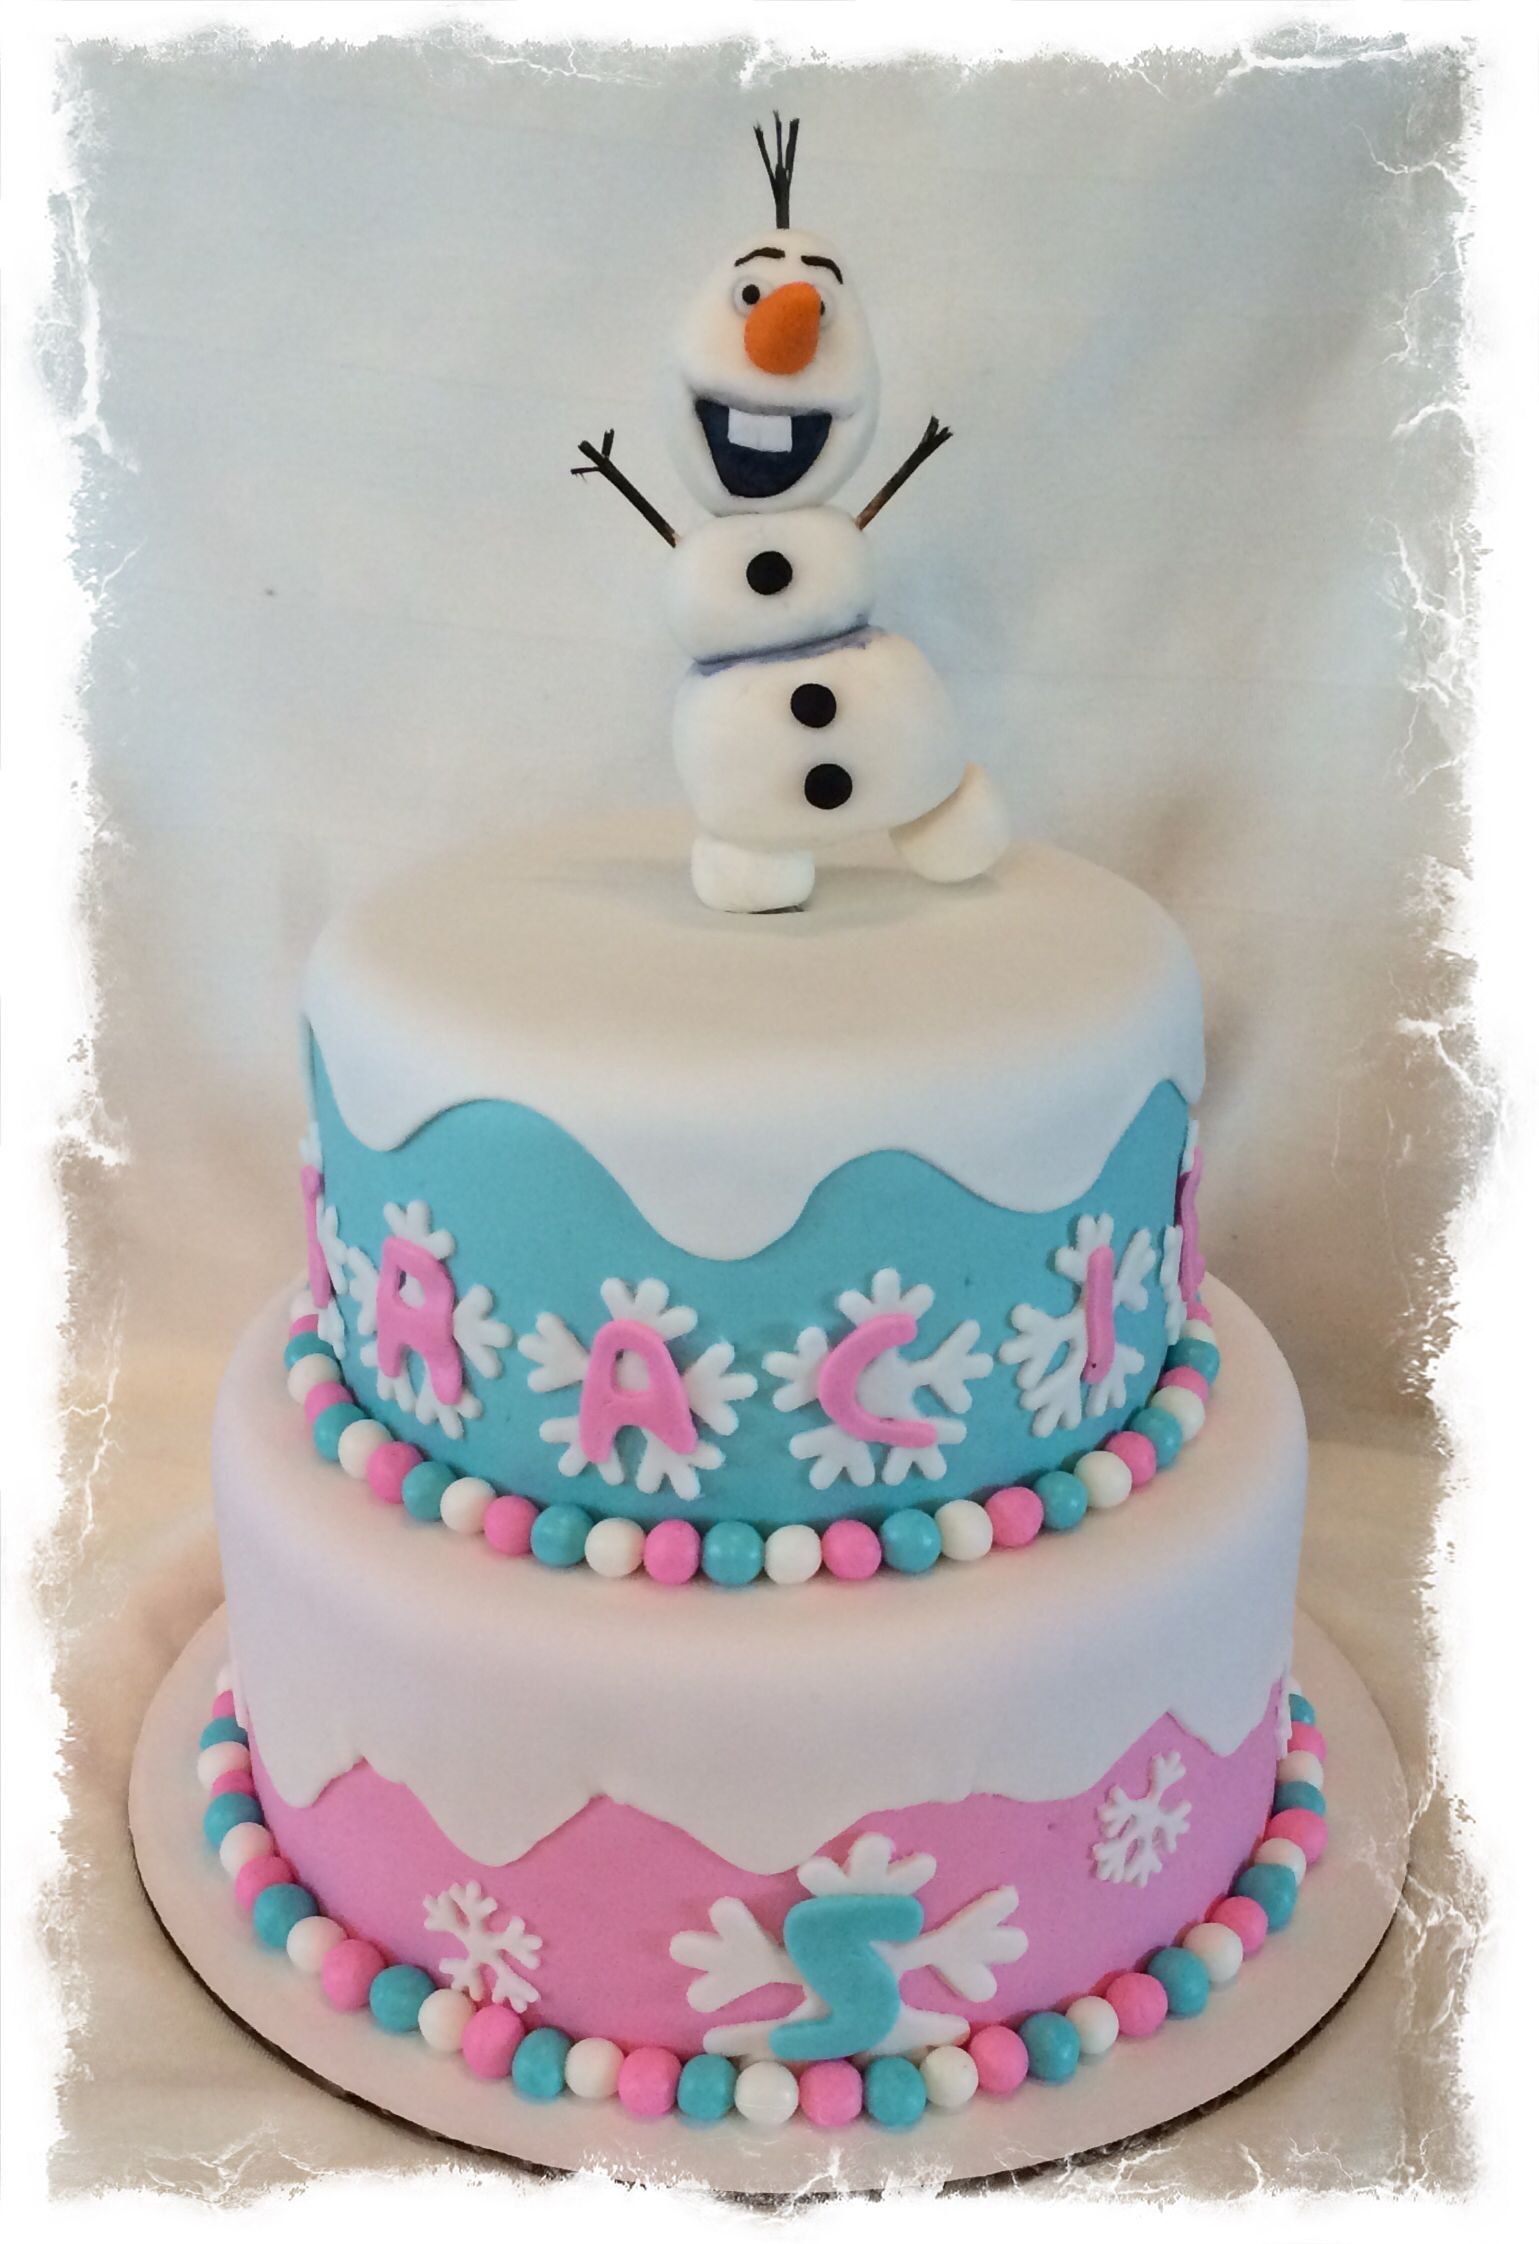 2 Tier Frozen Cake With 3d Olaf With Images Olaf Cake